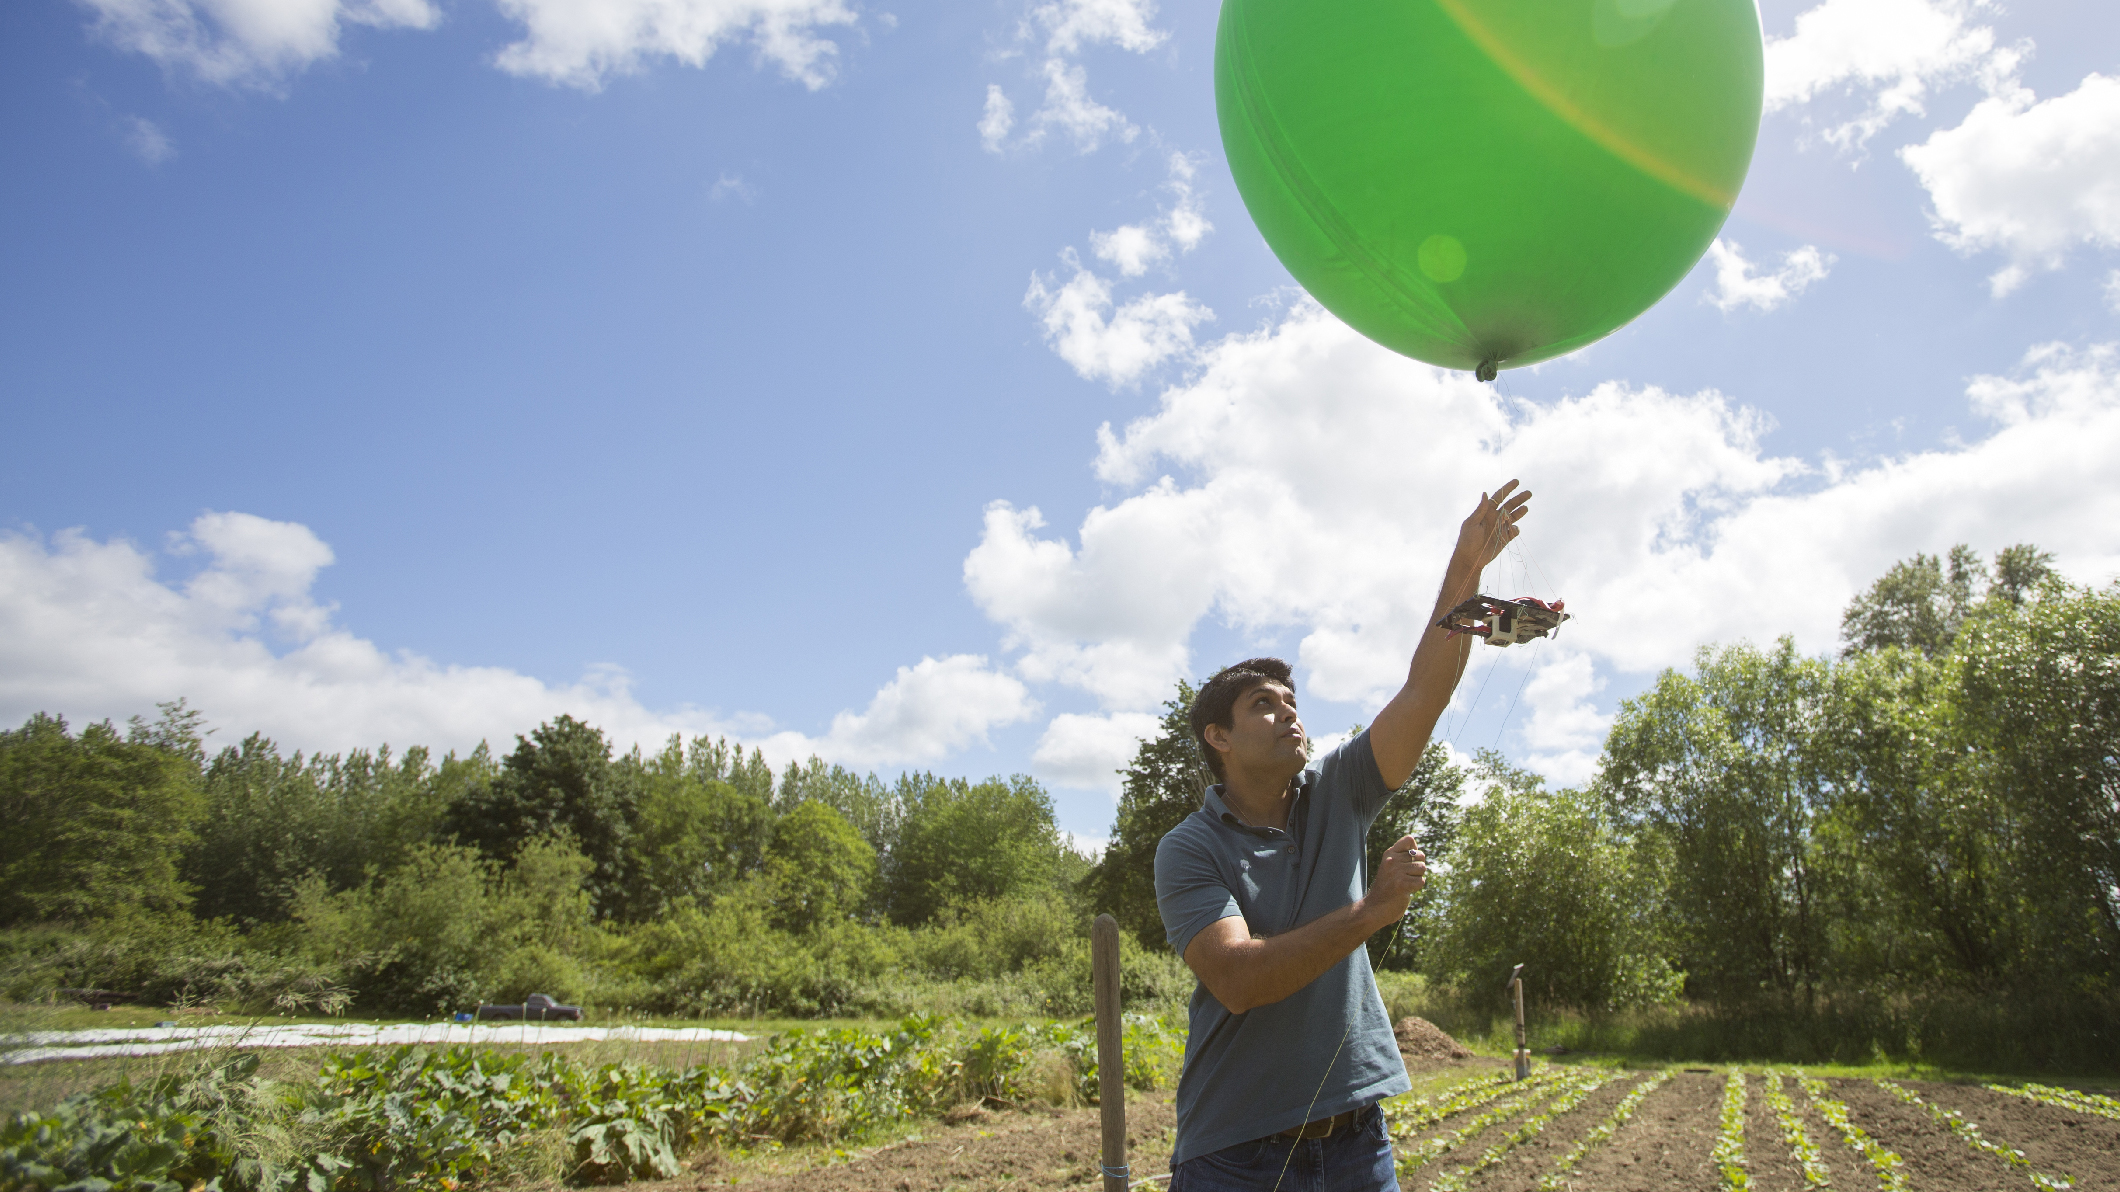 A man in the countryside lets go of a large balloon with a device attached to it.